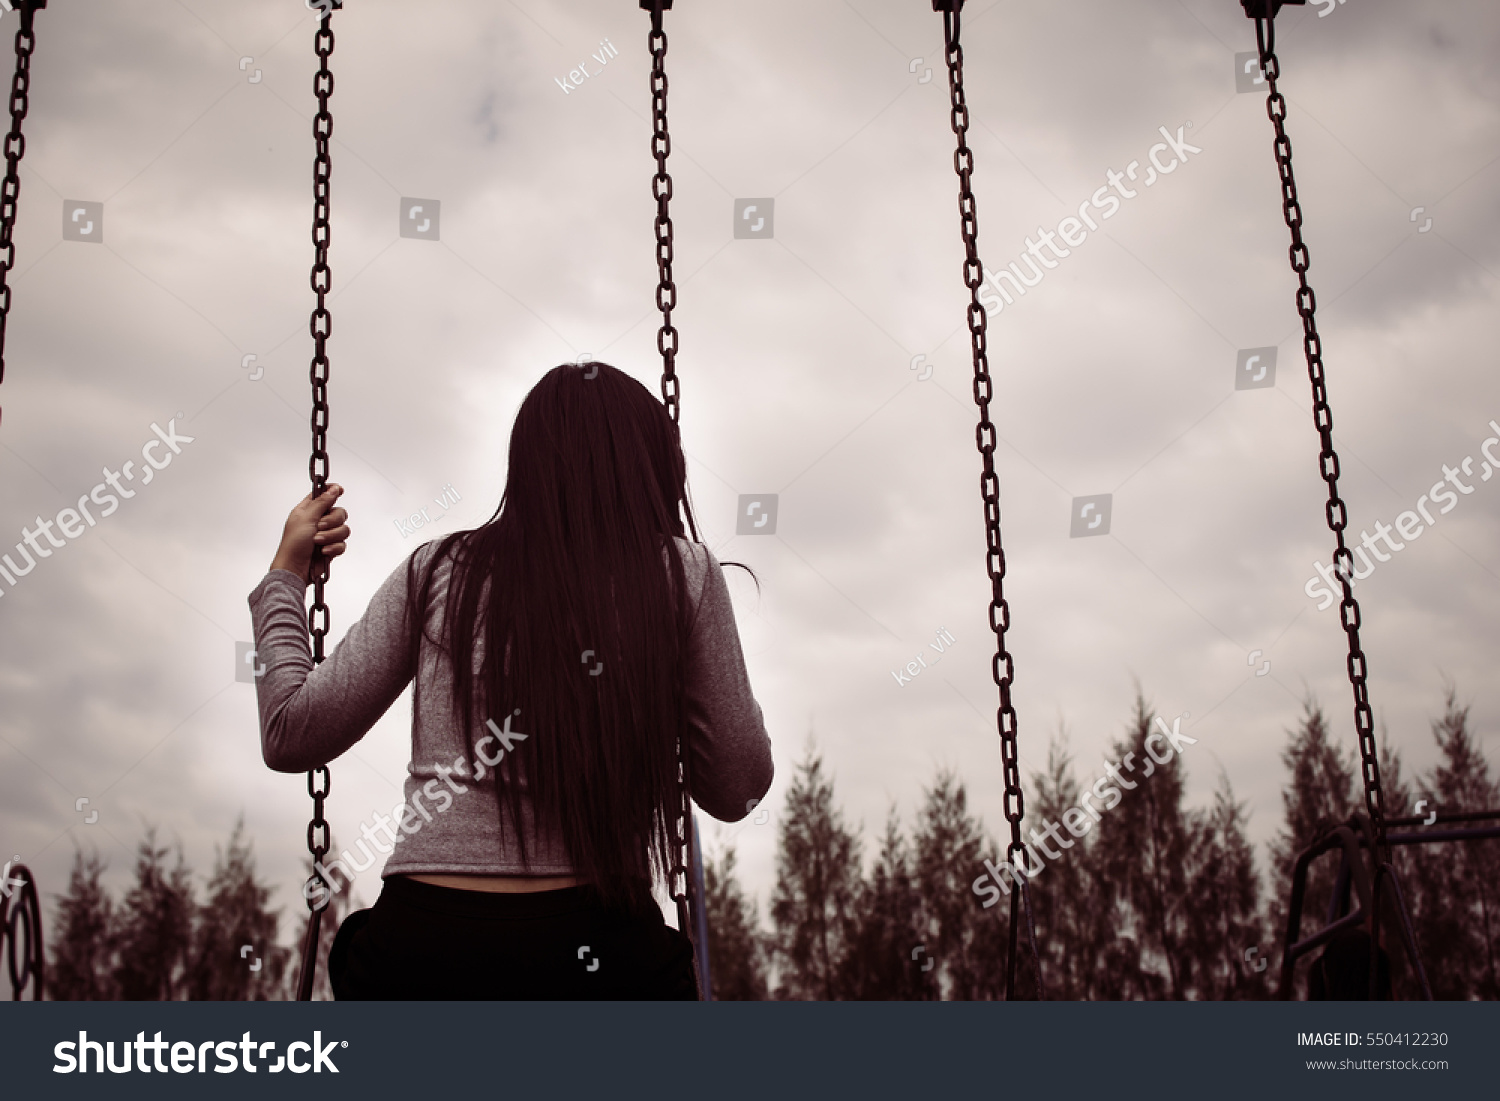 Woman sitting on the swing lonely alone in an empty